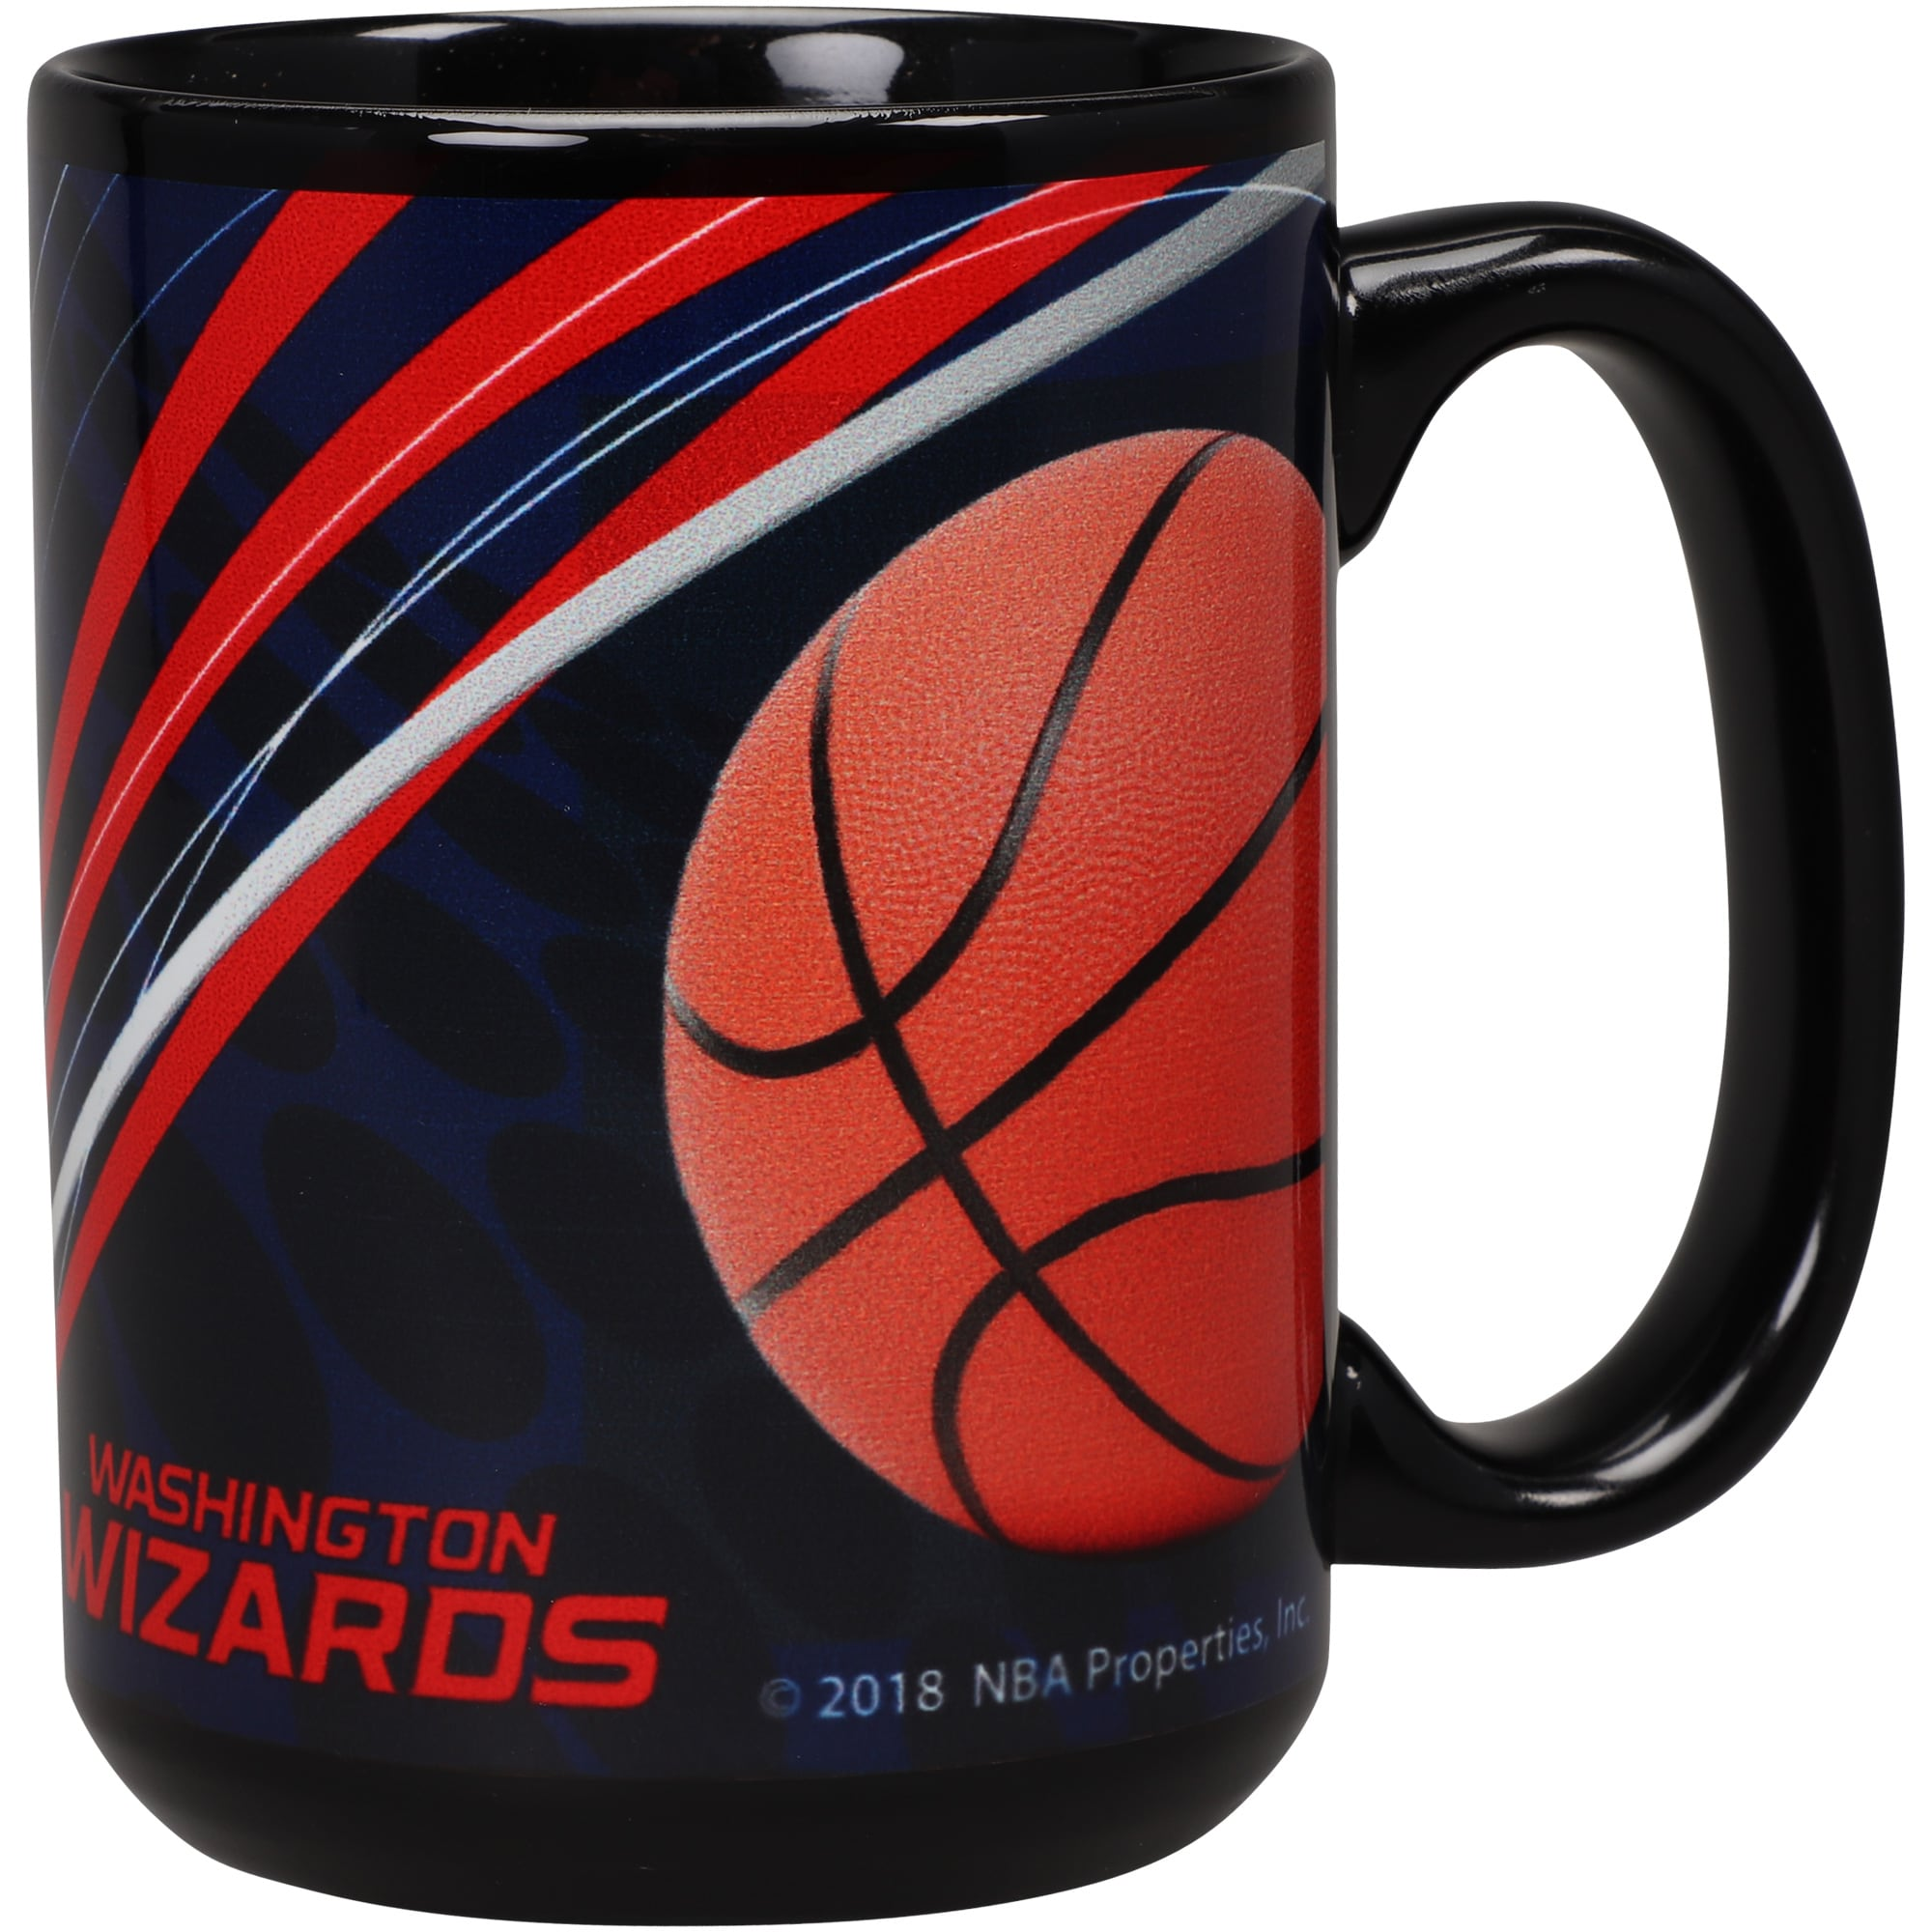 Washington Wizards 15oz. Dynamic Mug